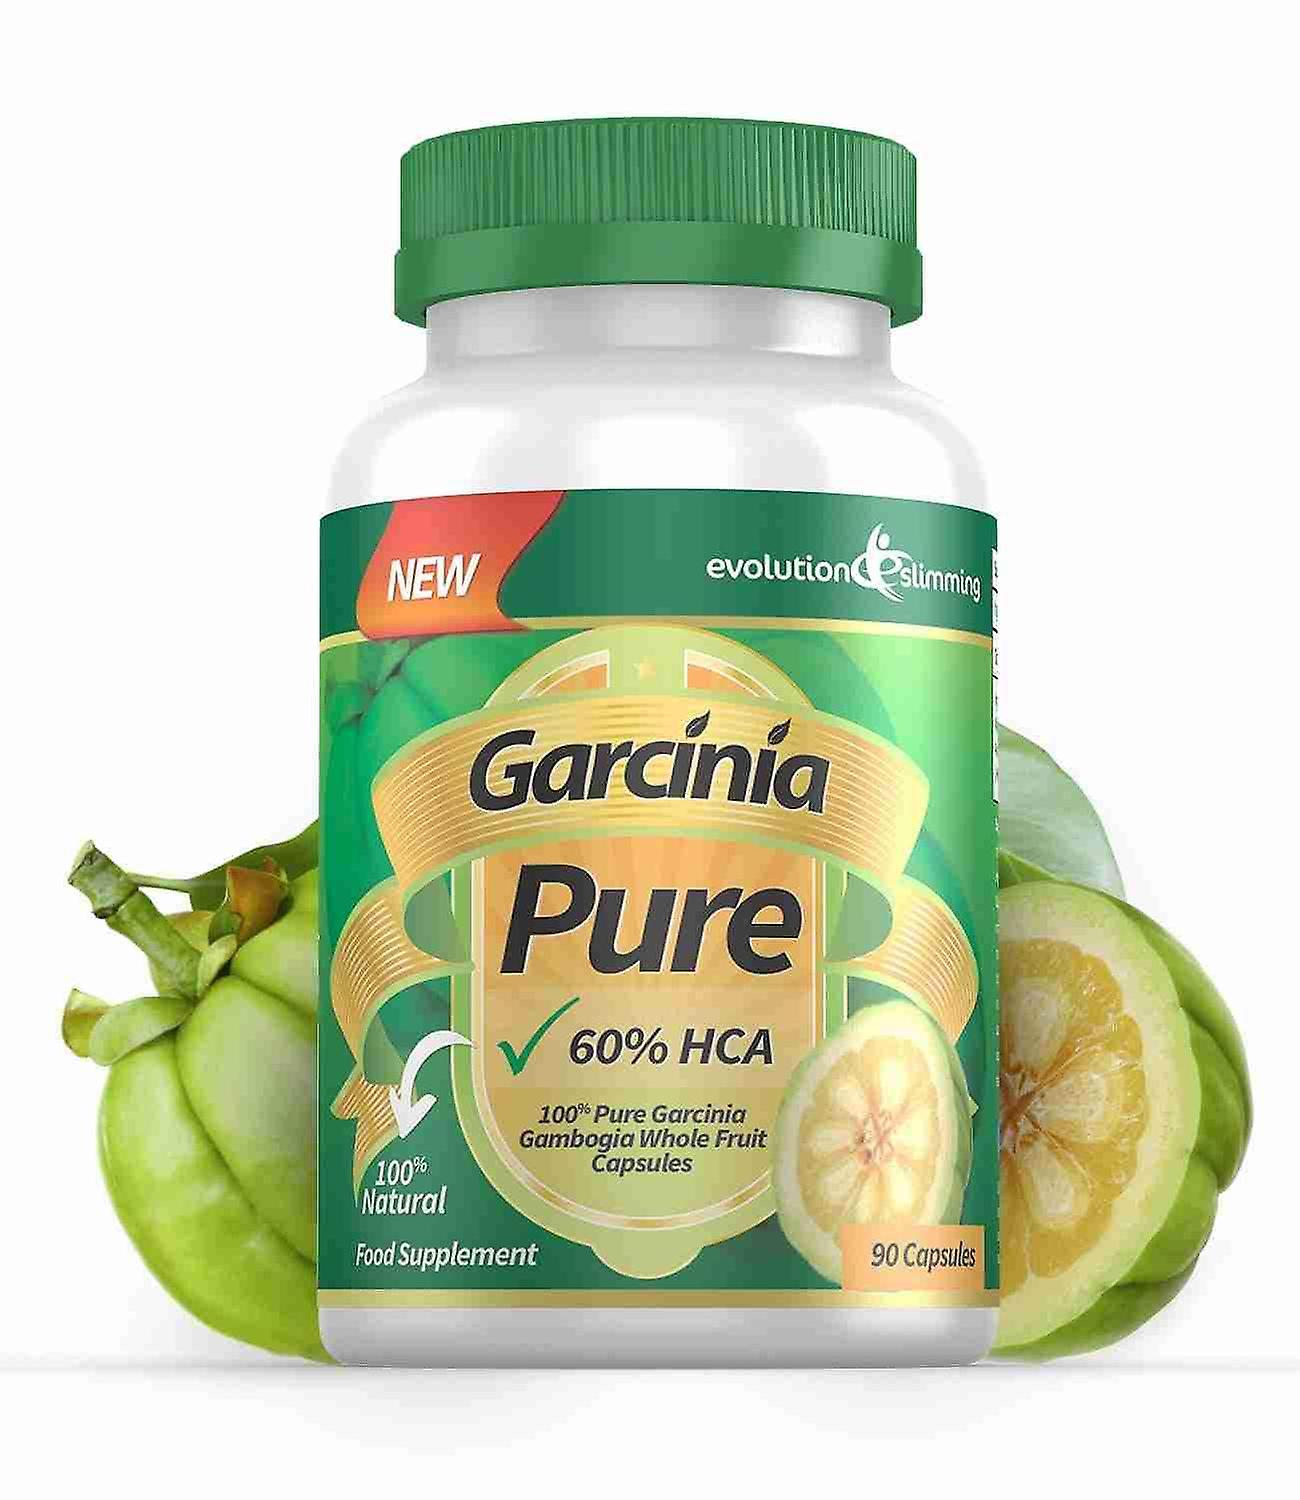 Garcinia Pure 100% Pure Garcinia Cambogia 1000mg 60% HCA - 1 Month Supply - Fat Burner and Appetite Control - Evolution Slimming